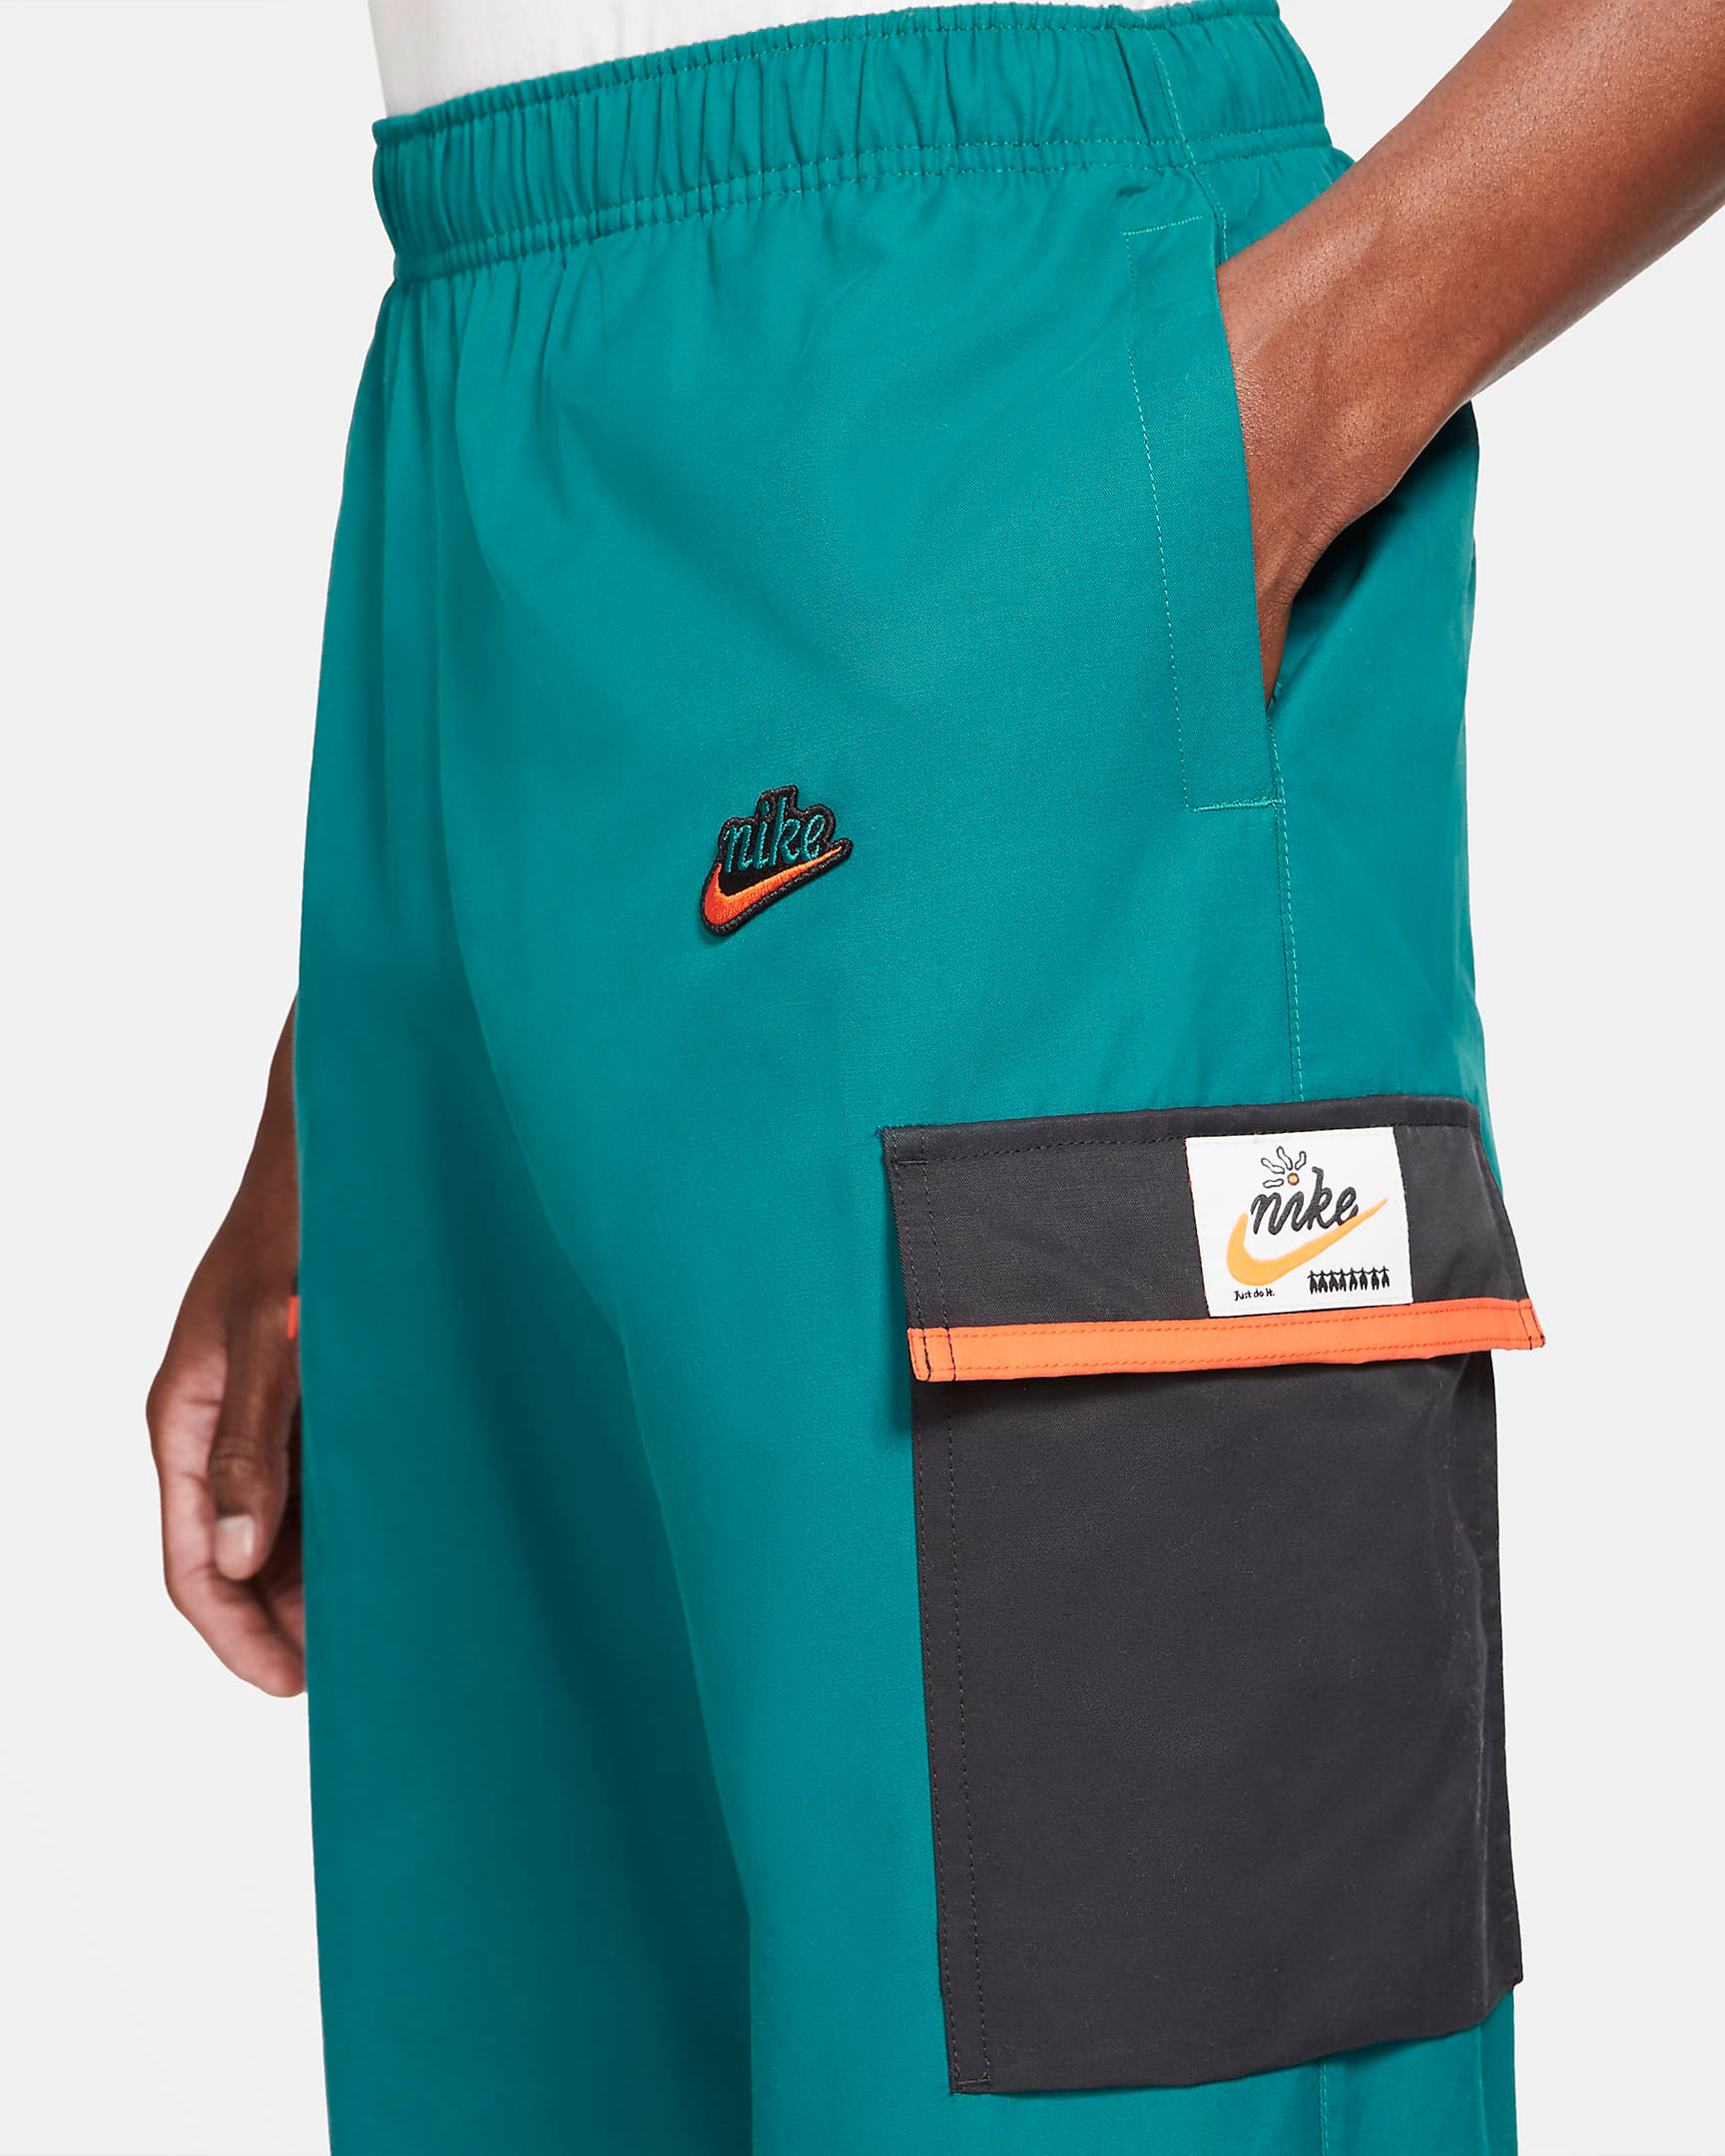 nike-air-griffey-max-1-freshwater-2021-pants-match-2